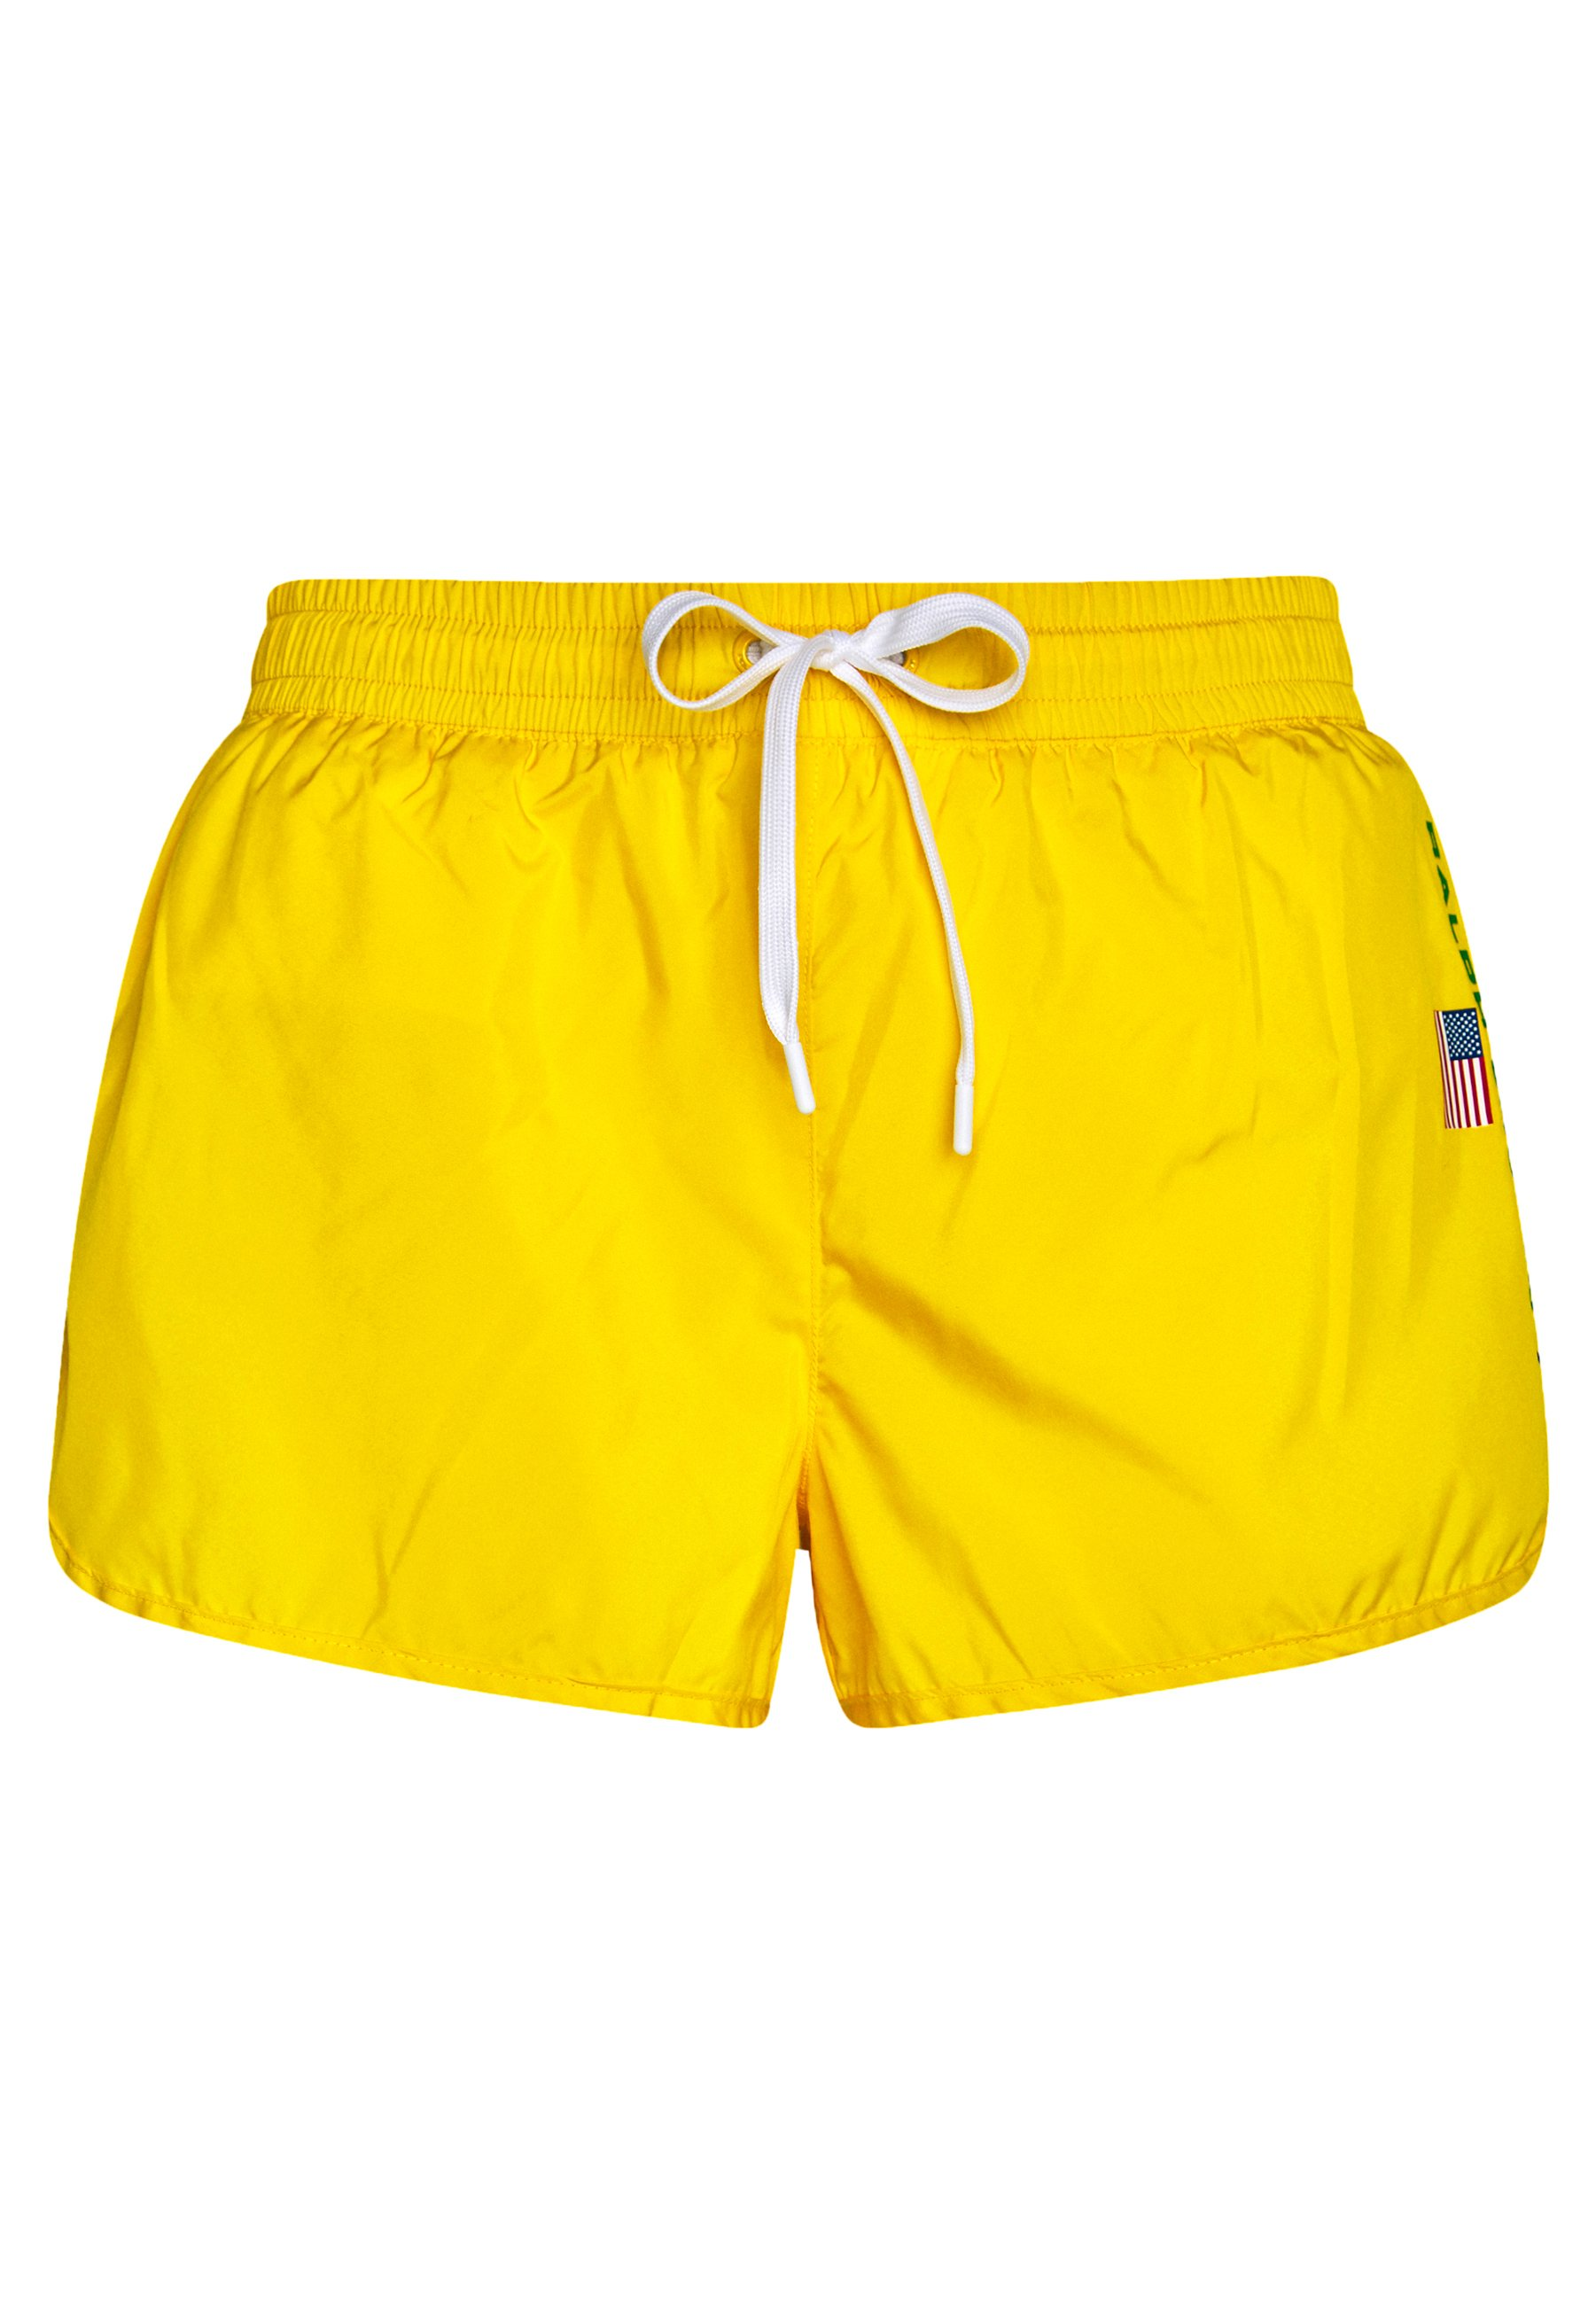 Polo Ralph Lauren Shorts - University Yellow